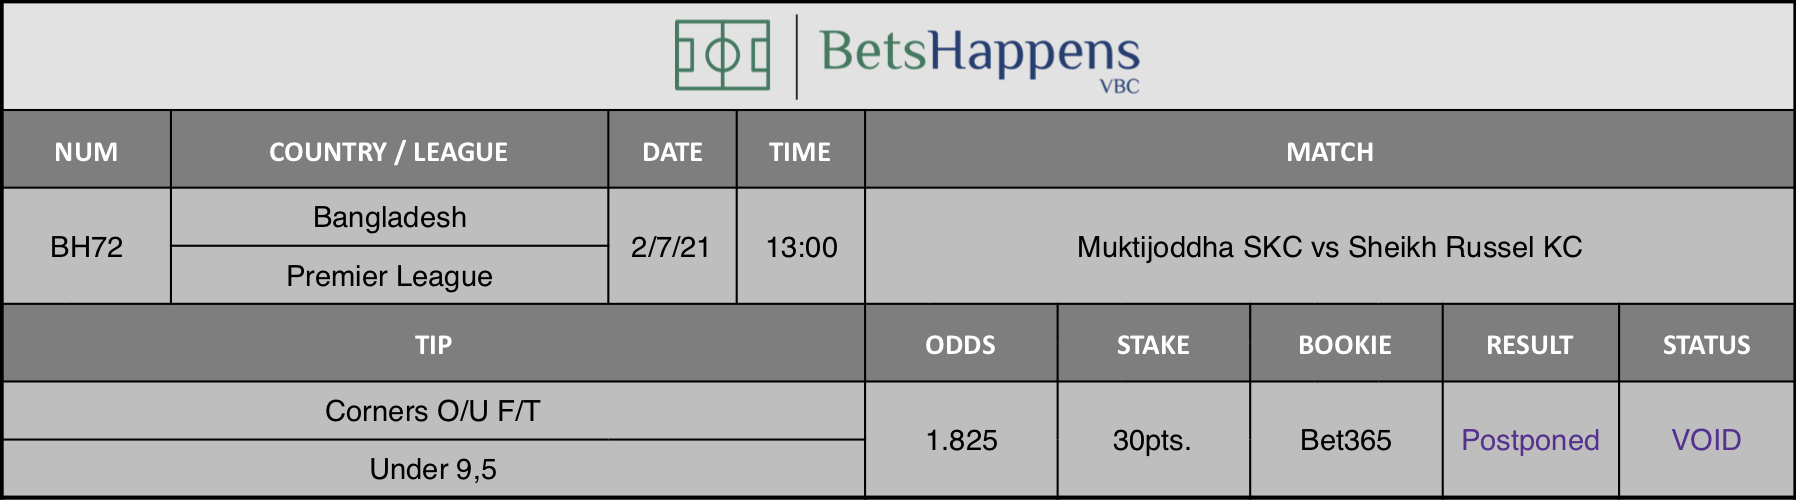 Results of our tip for the Muktijoddha SKC vs Sheikh Russel KC match Corners O/U F/T Under 9,5 is recommended.